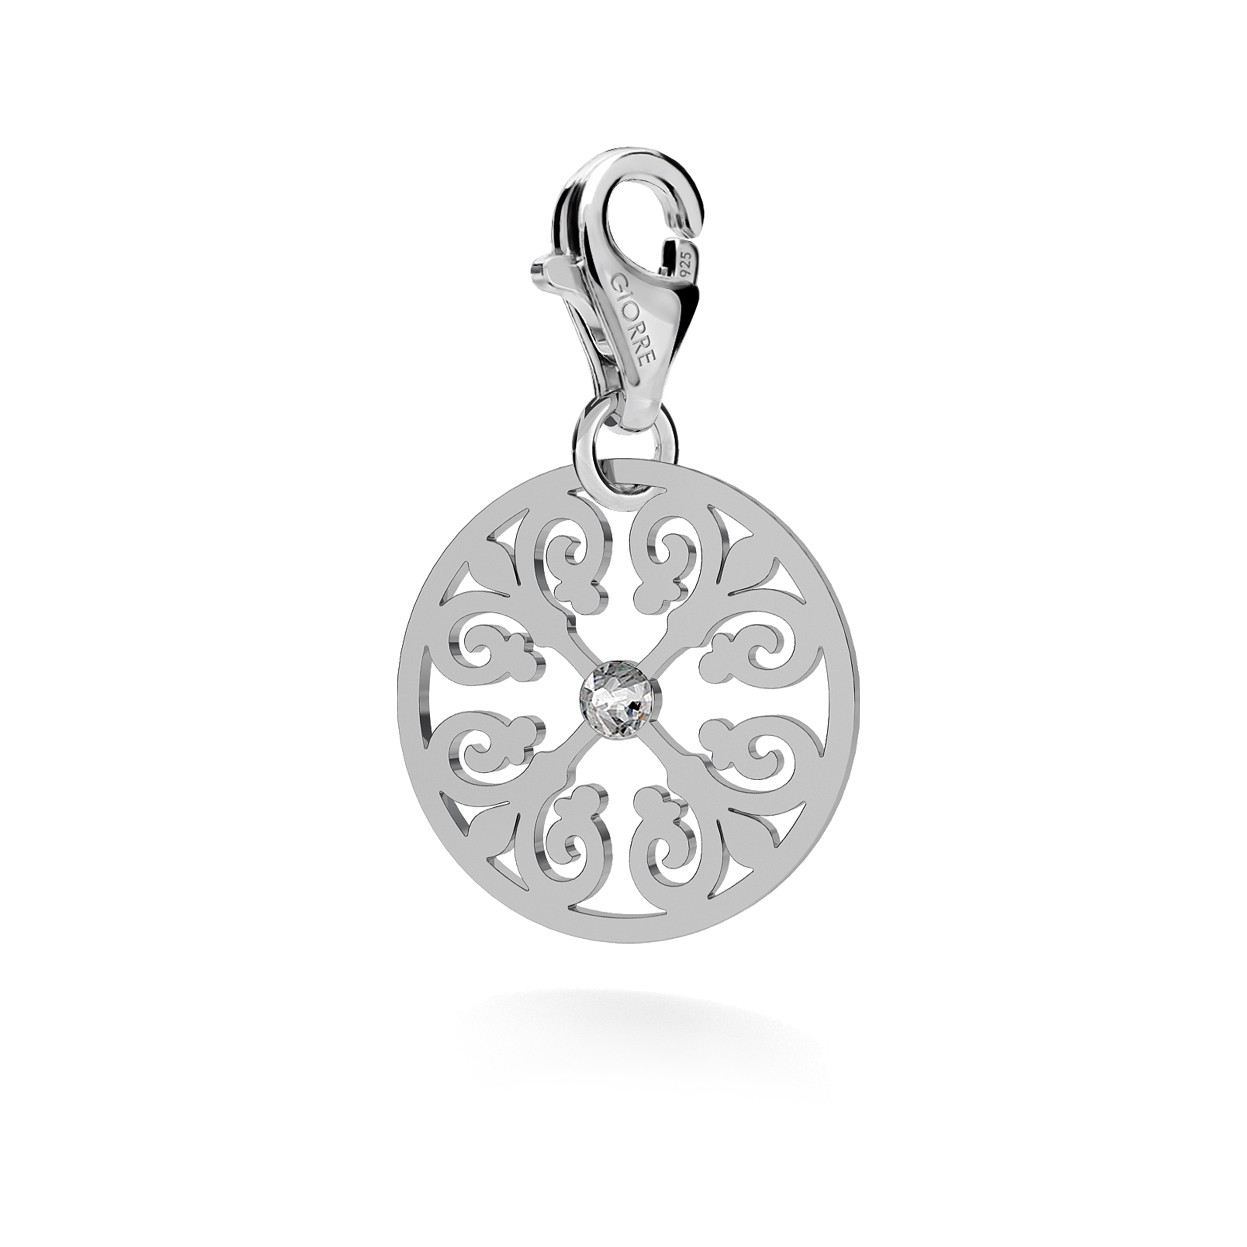 CHARM 94, ROUND OPENWORK PENDANT, SWAROVSKI 2038 SS 6 HF CRYSTAL, SILVER 925,  RHODIUM OR GOLD PLATED